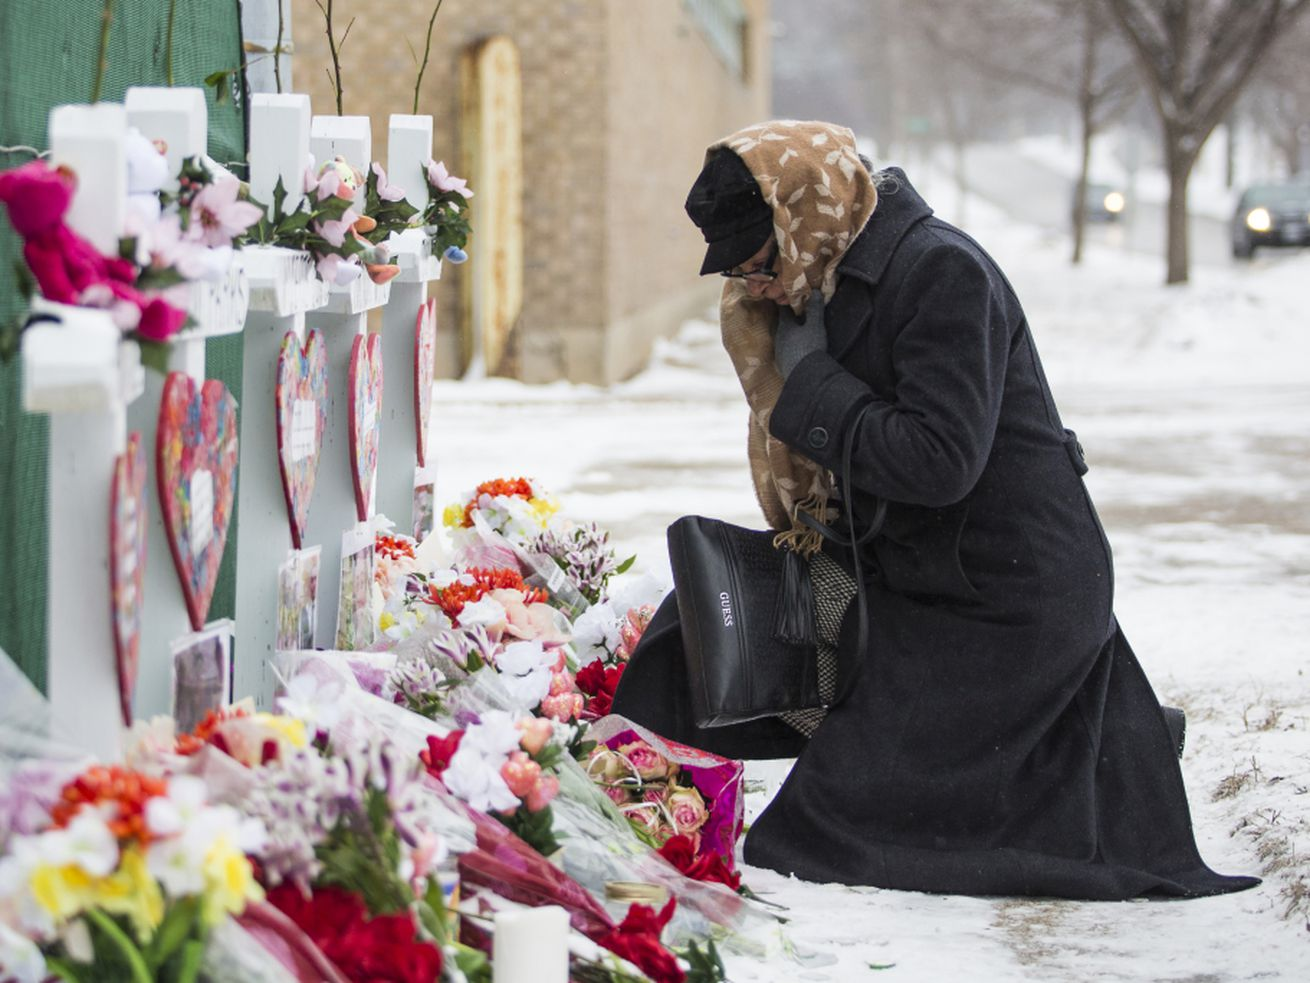 A mourner pays respects at a memorial for the five people killed in a shooting at the Henry Pratt Company in Aurora in February.